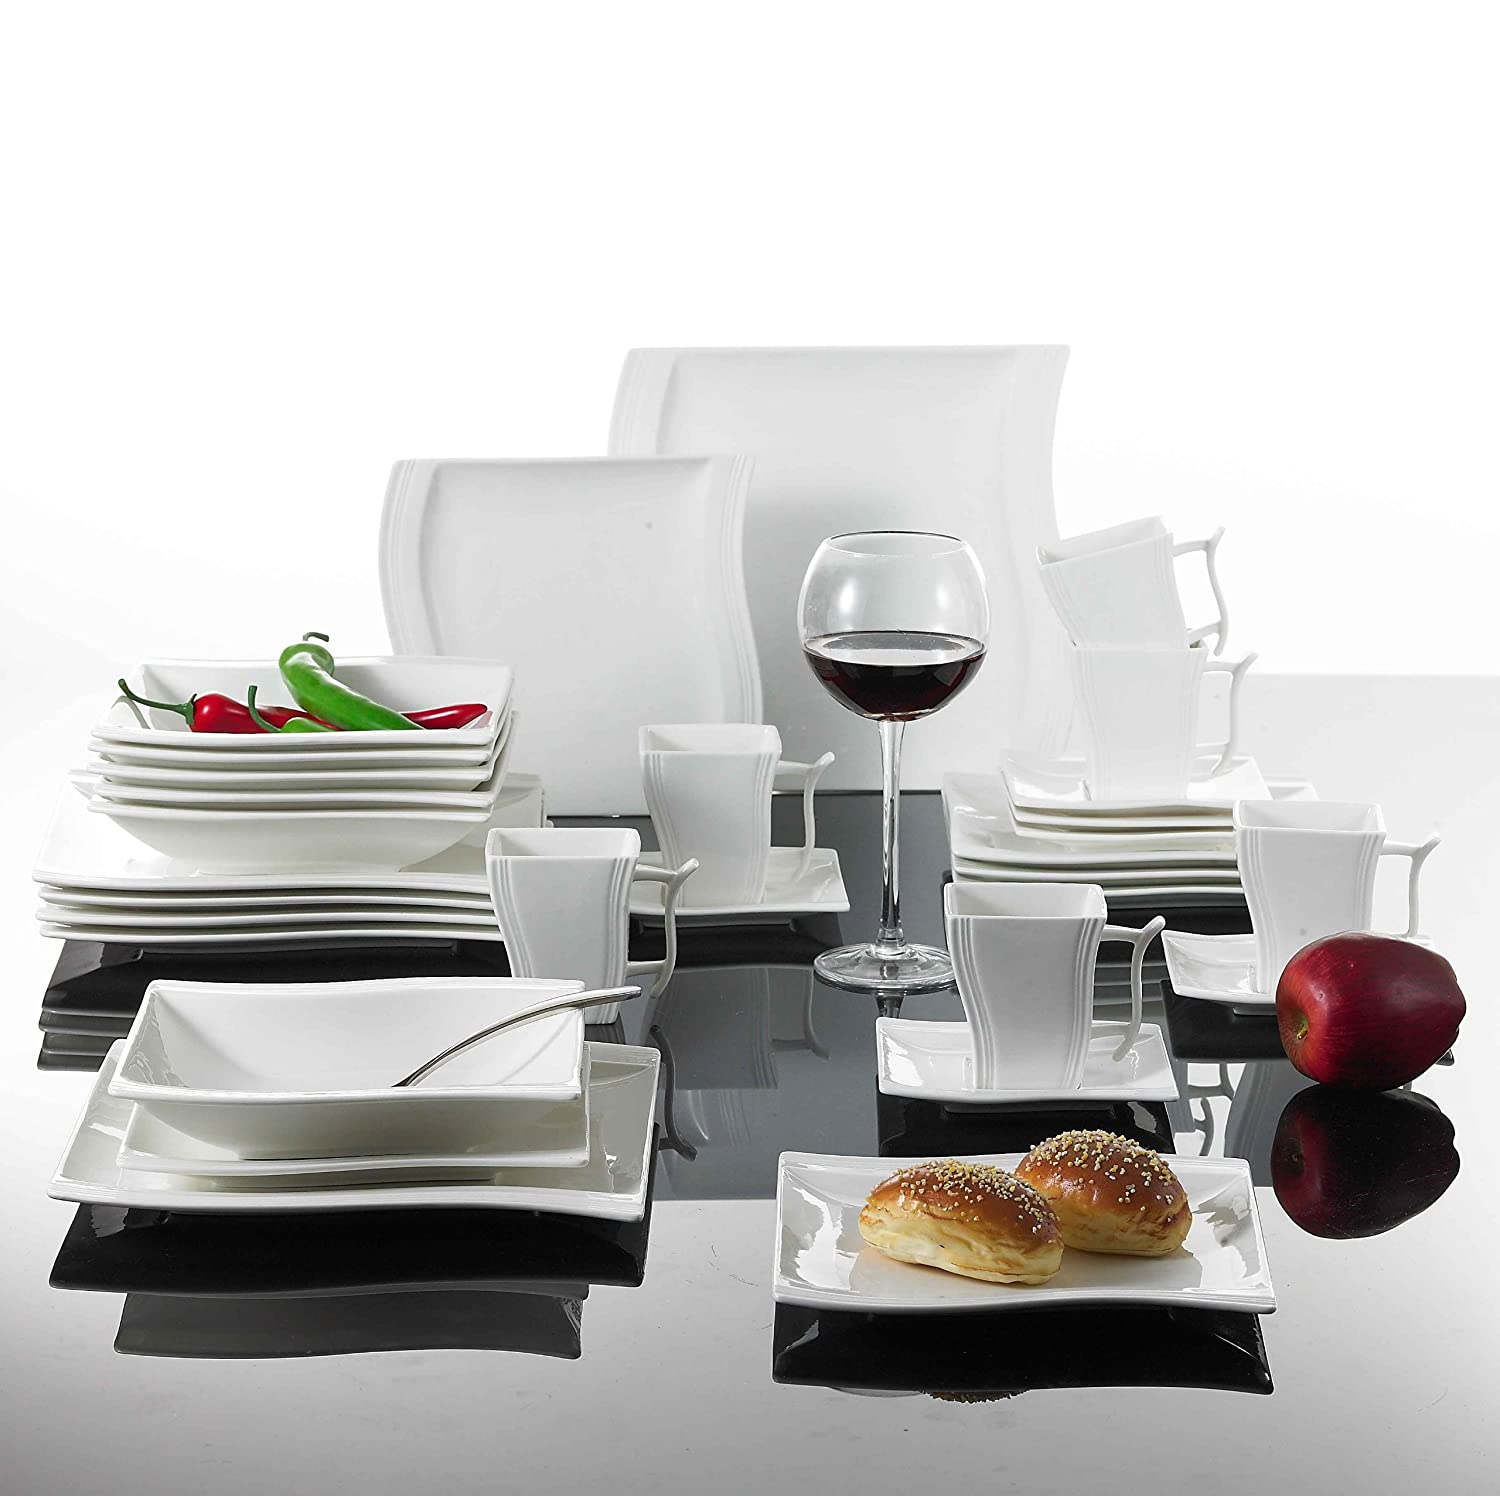 Malacasa Series Flora 30-Piece Wave Shaped Cream White Porcelain Dinner Set with 6-Piece Cups / Saucers / Dessert Plates / Soup Plates / Dinner Plates ...  sc 1 st  Amazon UK & Malacasa Series Flora 30-Piece Wave Shaped Cream White Porcelain ...